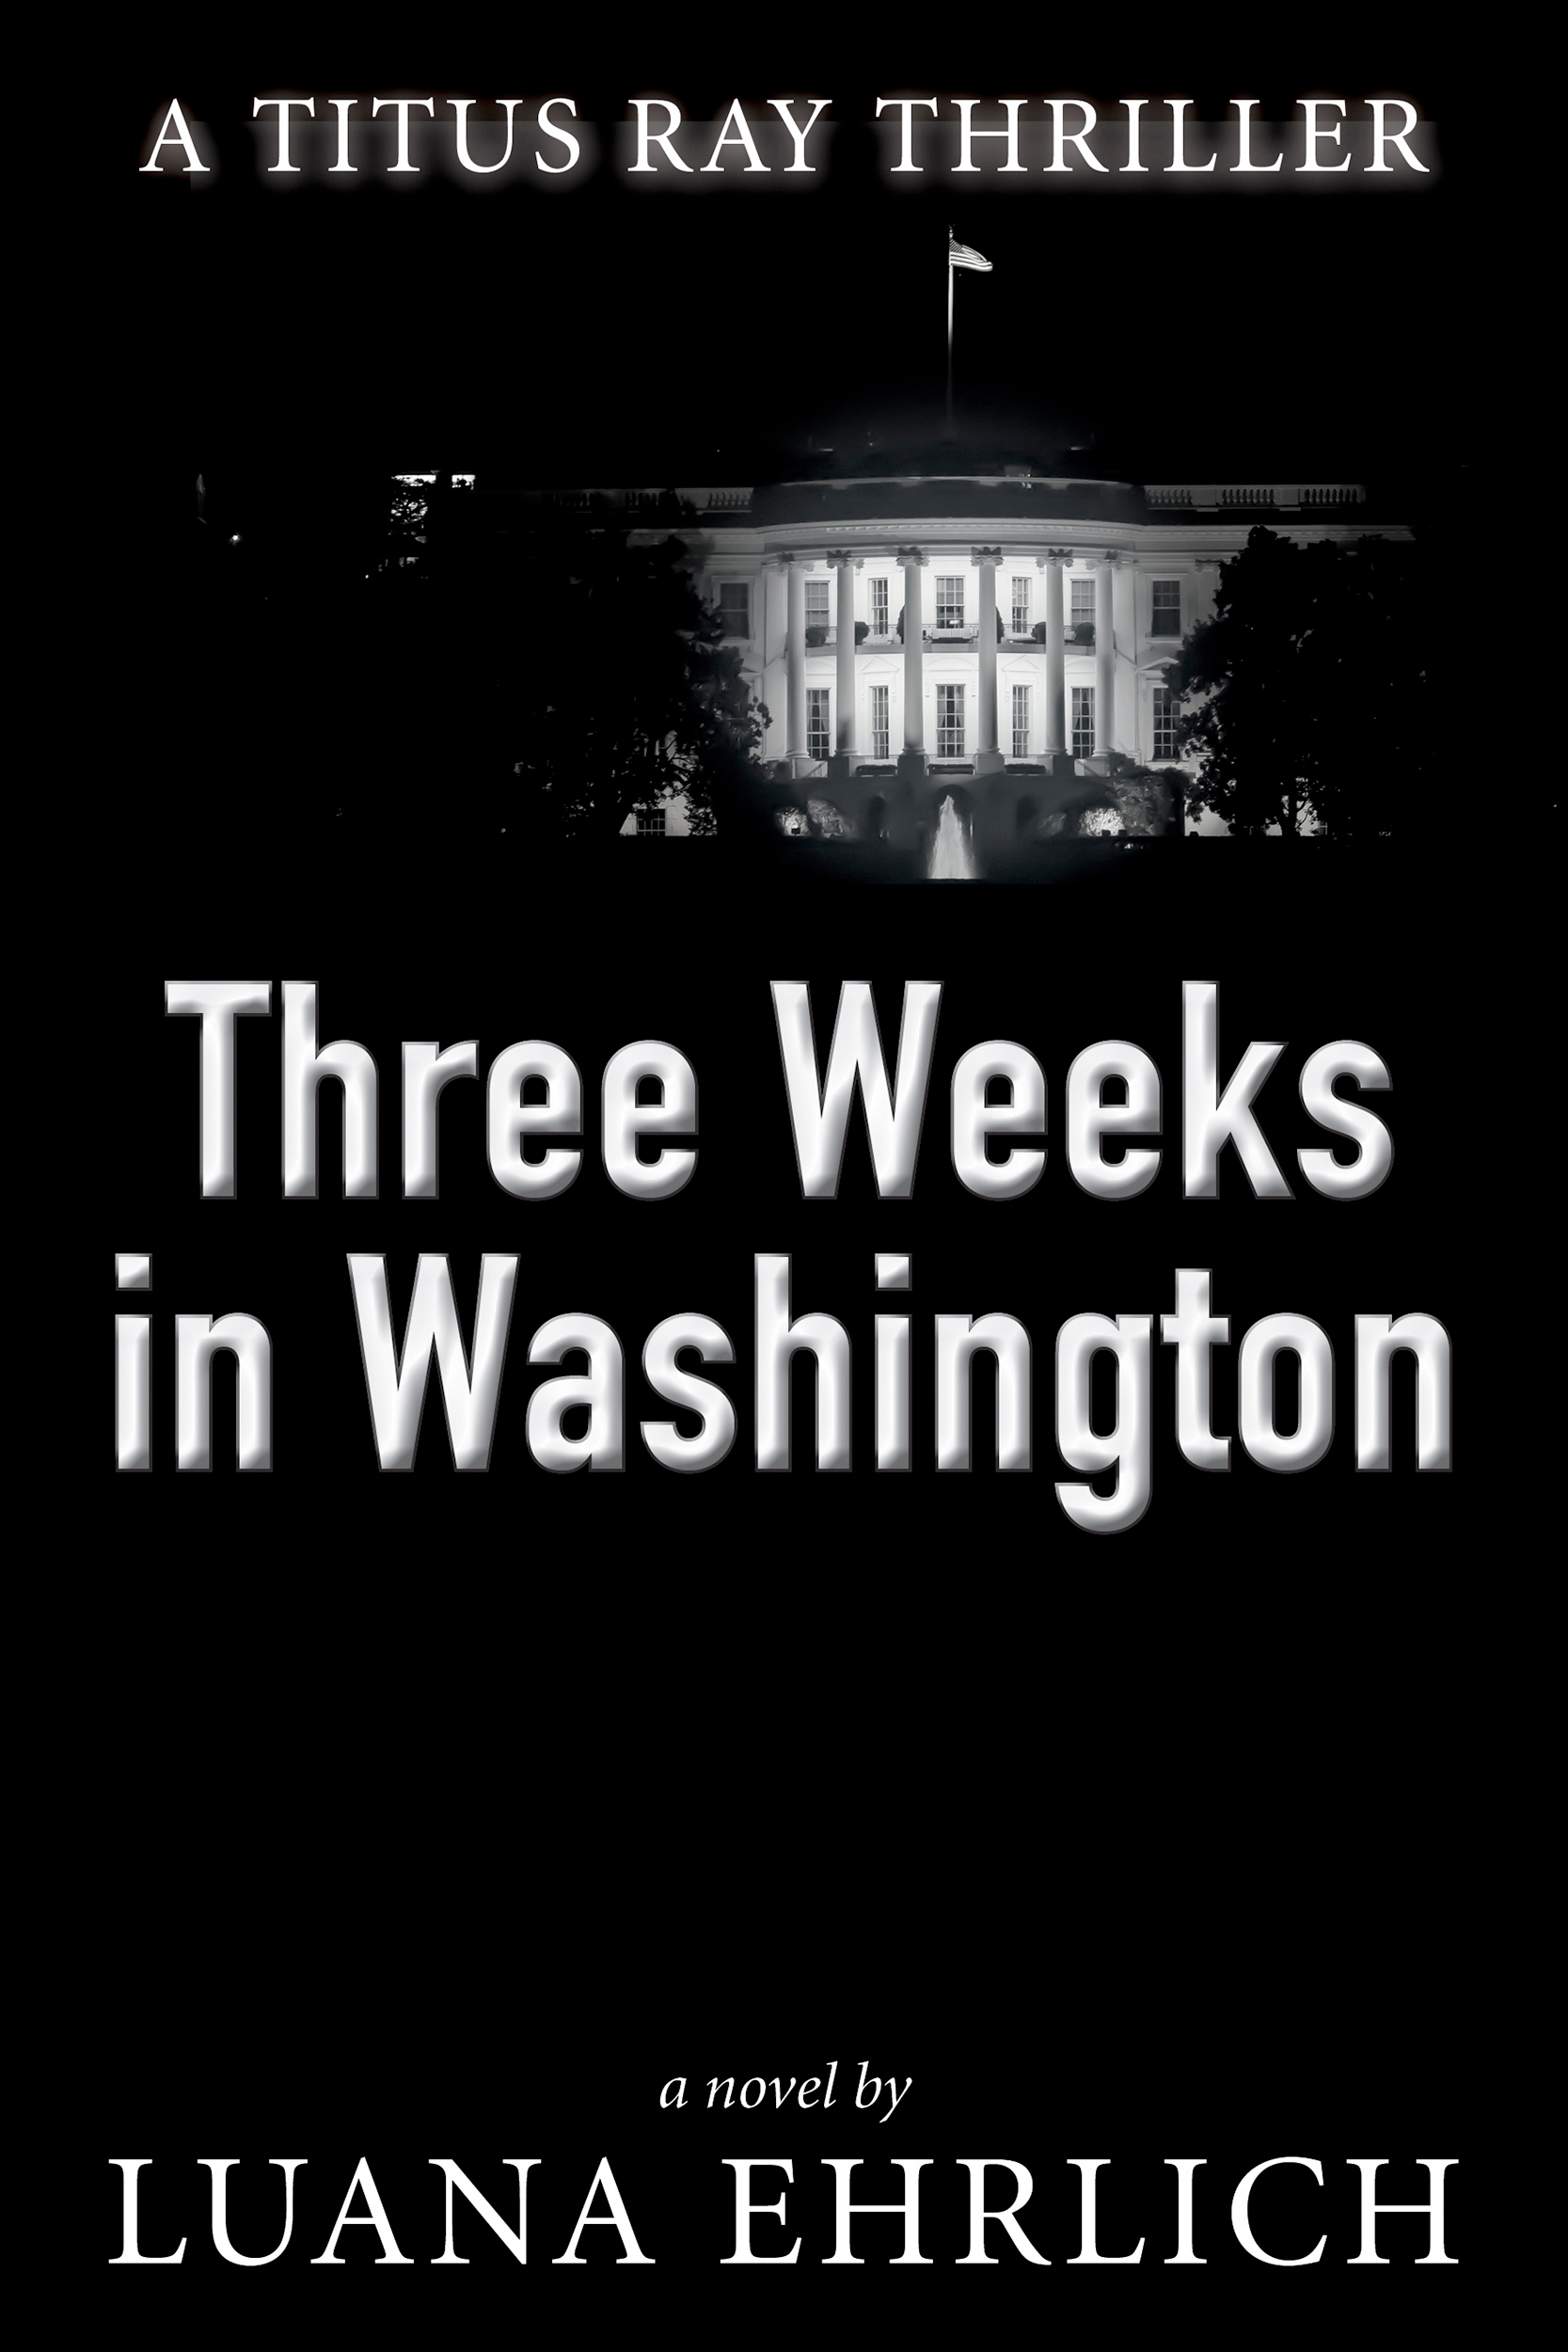 Three Weeks in Washington bookcover